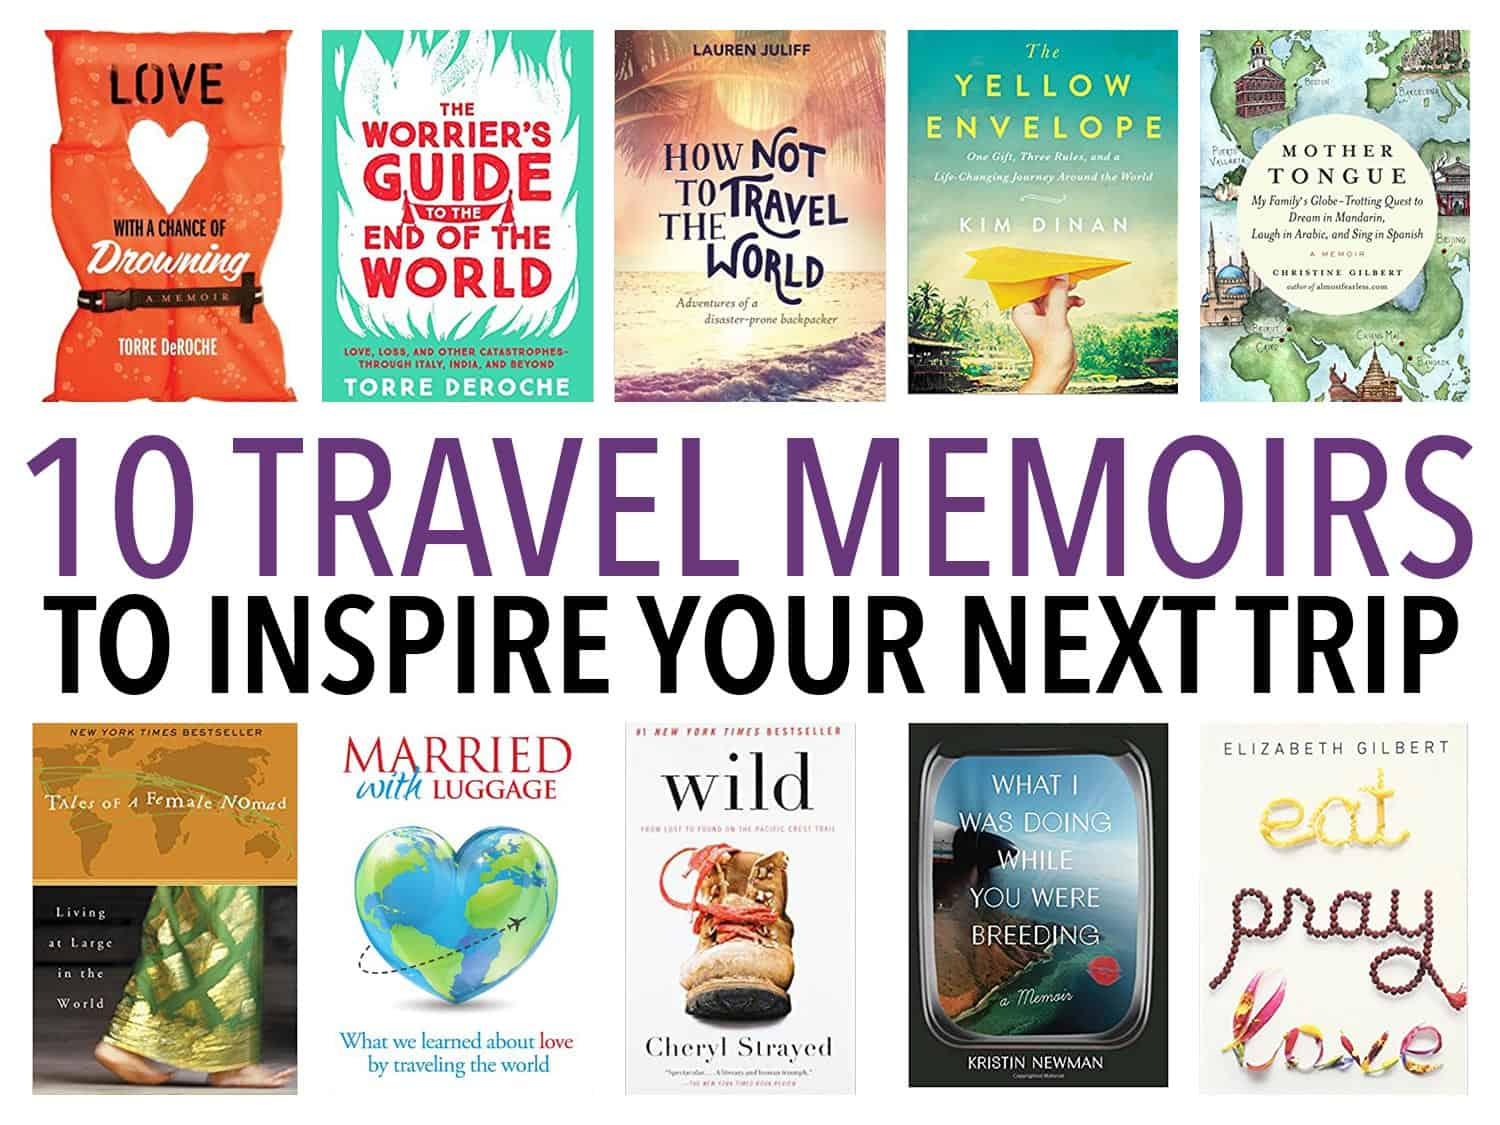 The best female travel memoirs about long-term travel to inspire your next trip